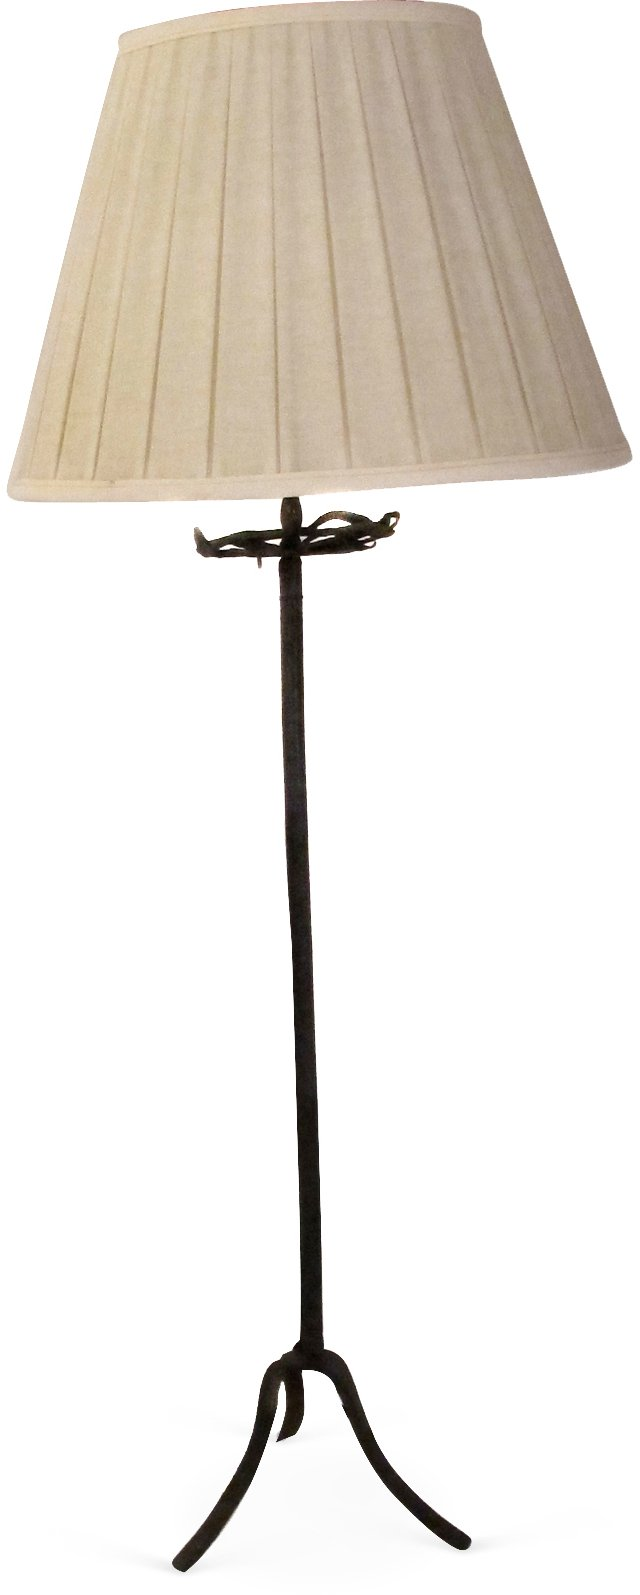 Rustic Iron Picket Lamp I